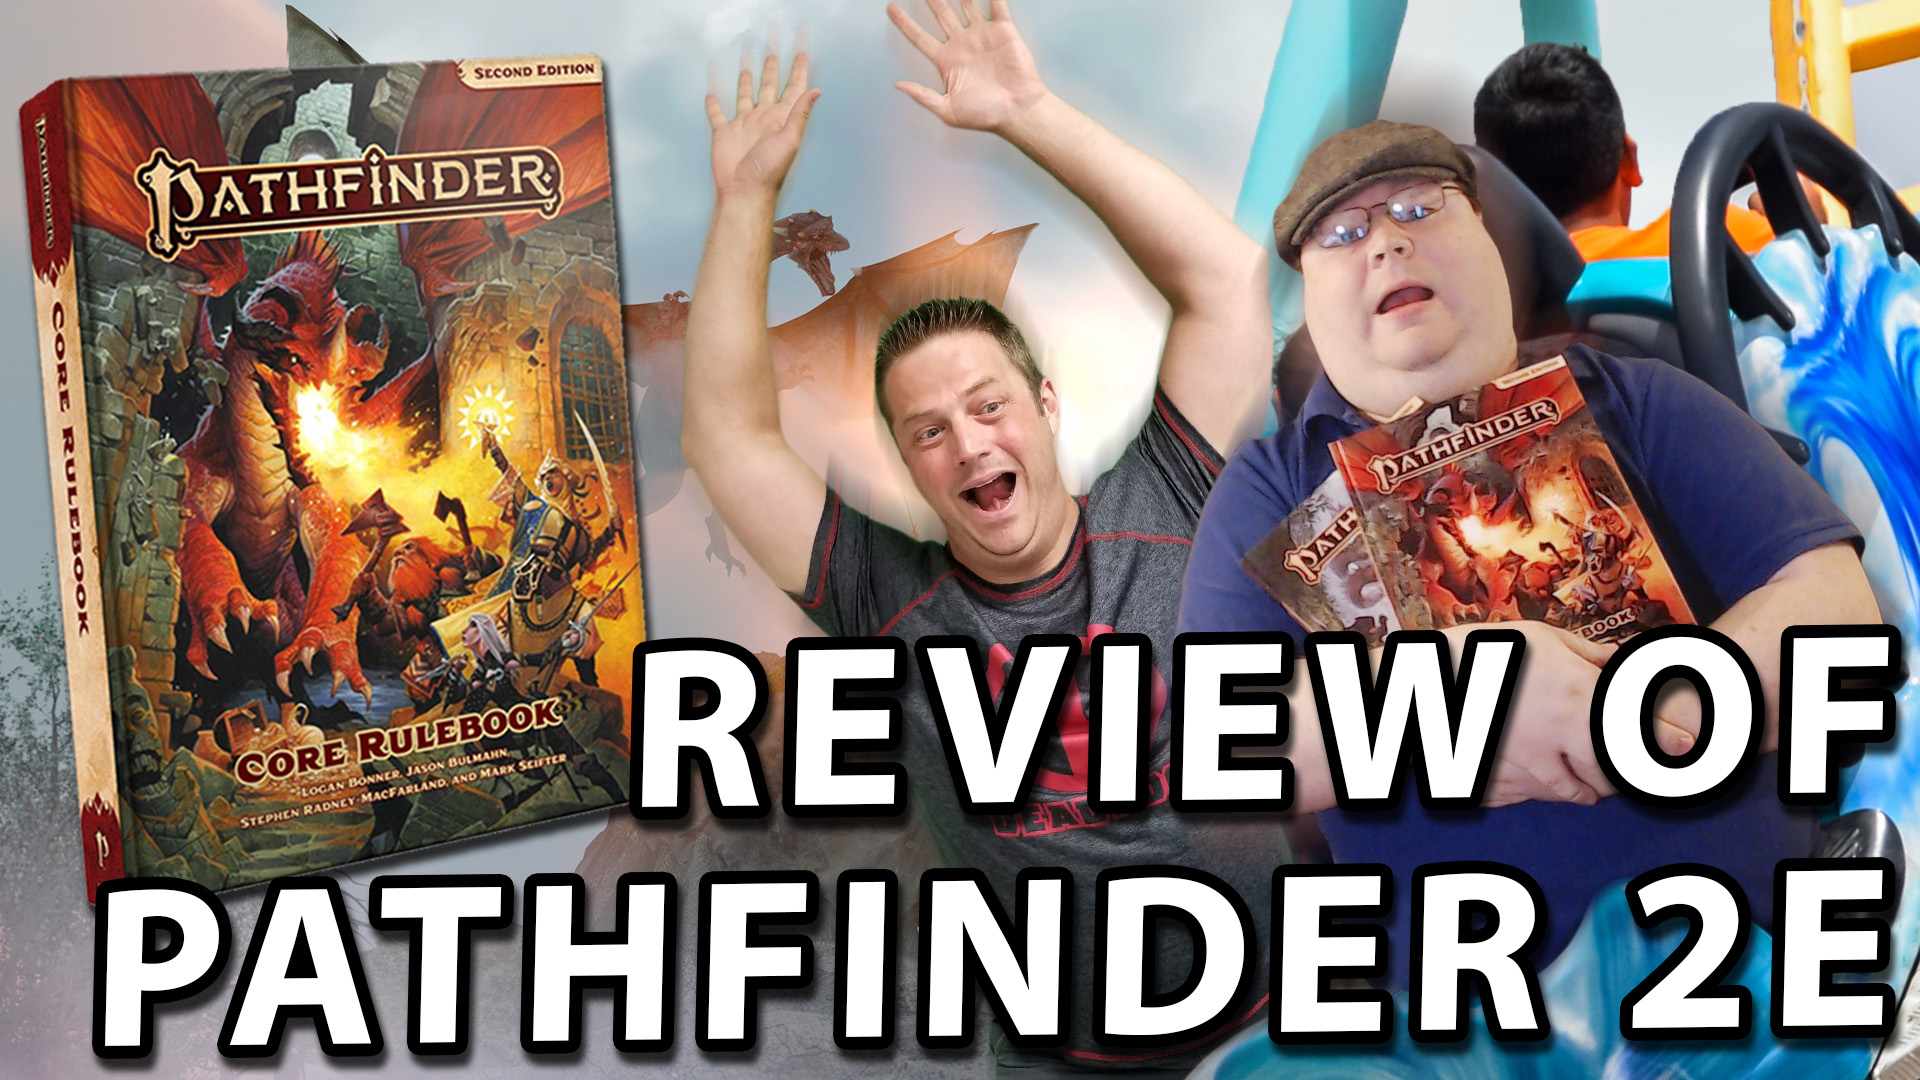 Review of Pathfinder Second Edition, Ryan and PErram in a roller coaster being chased by a dragon